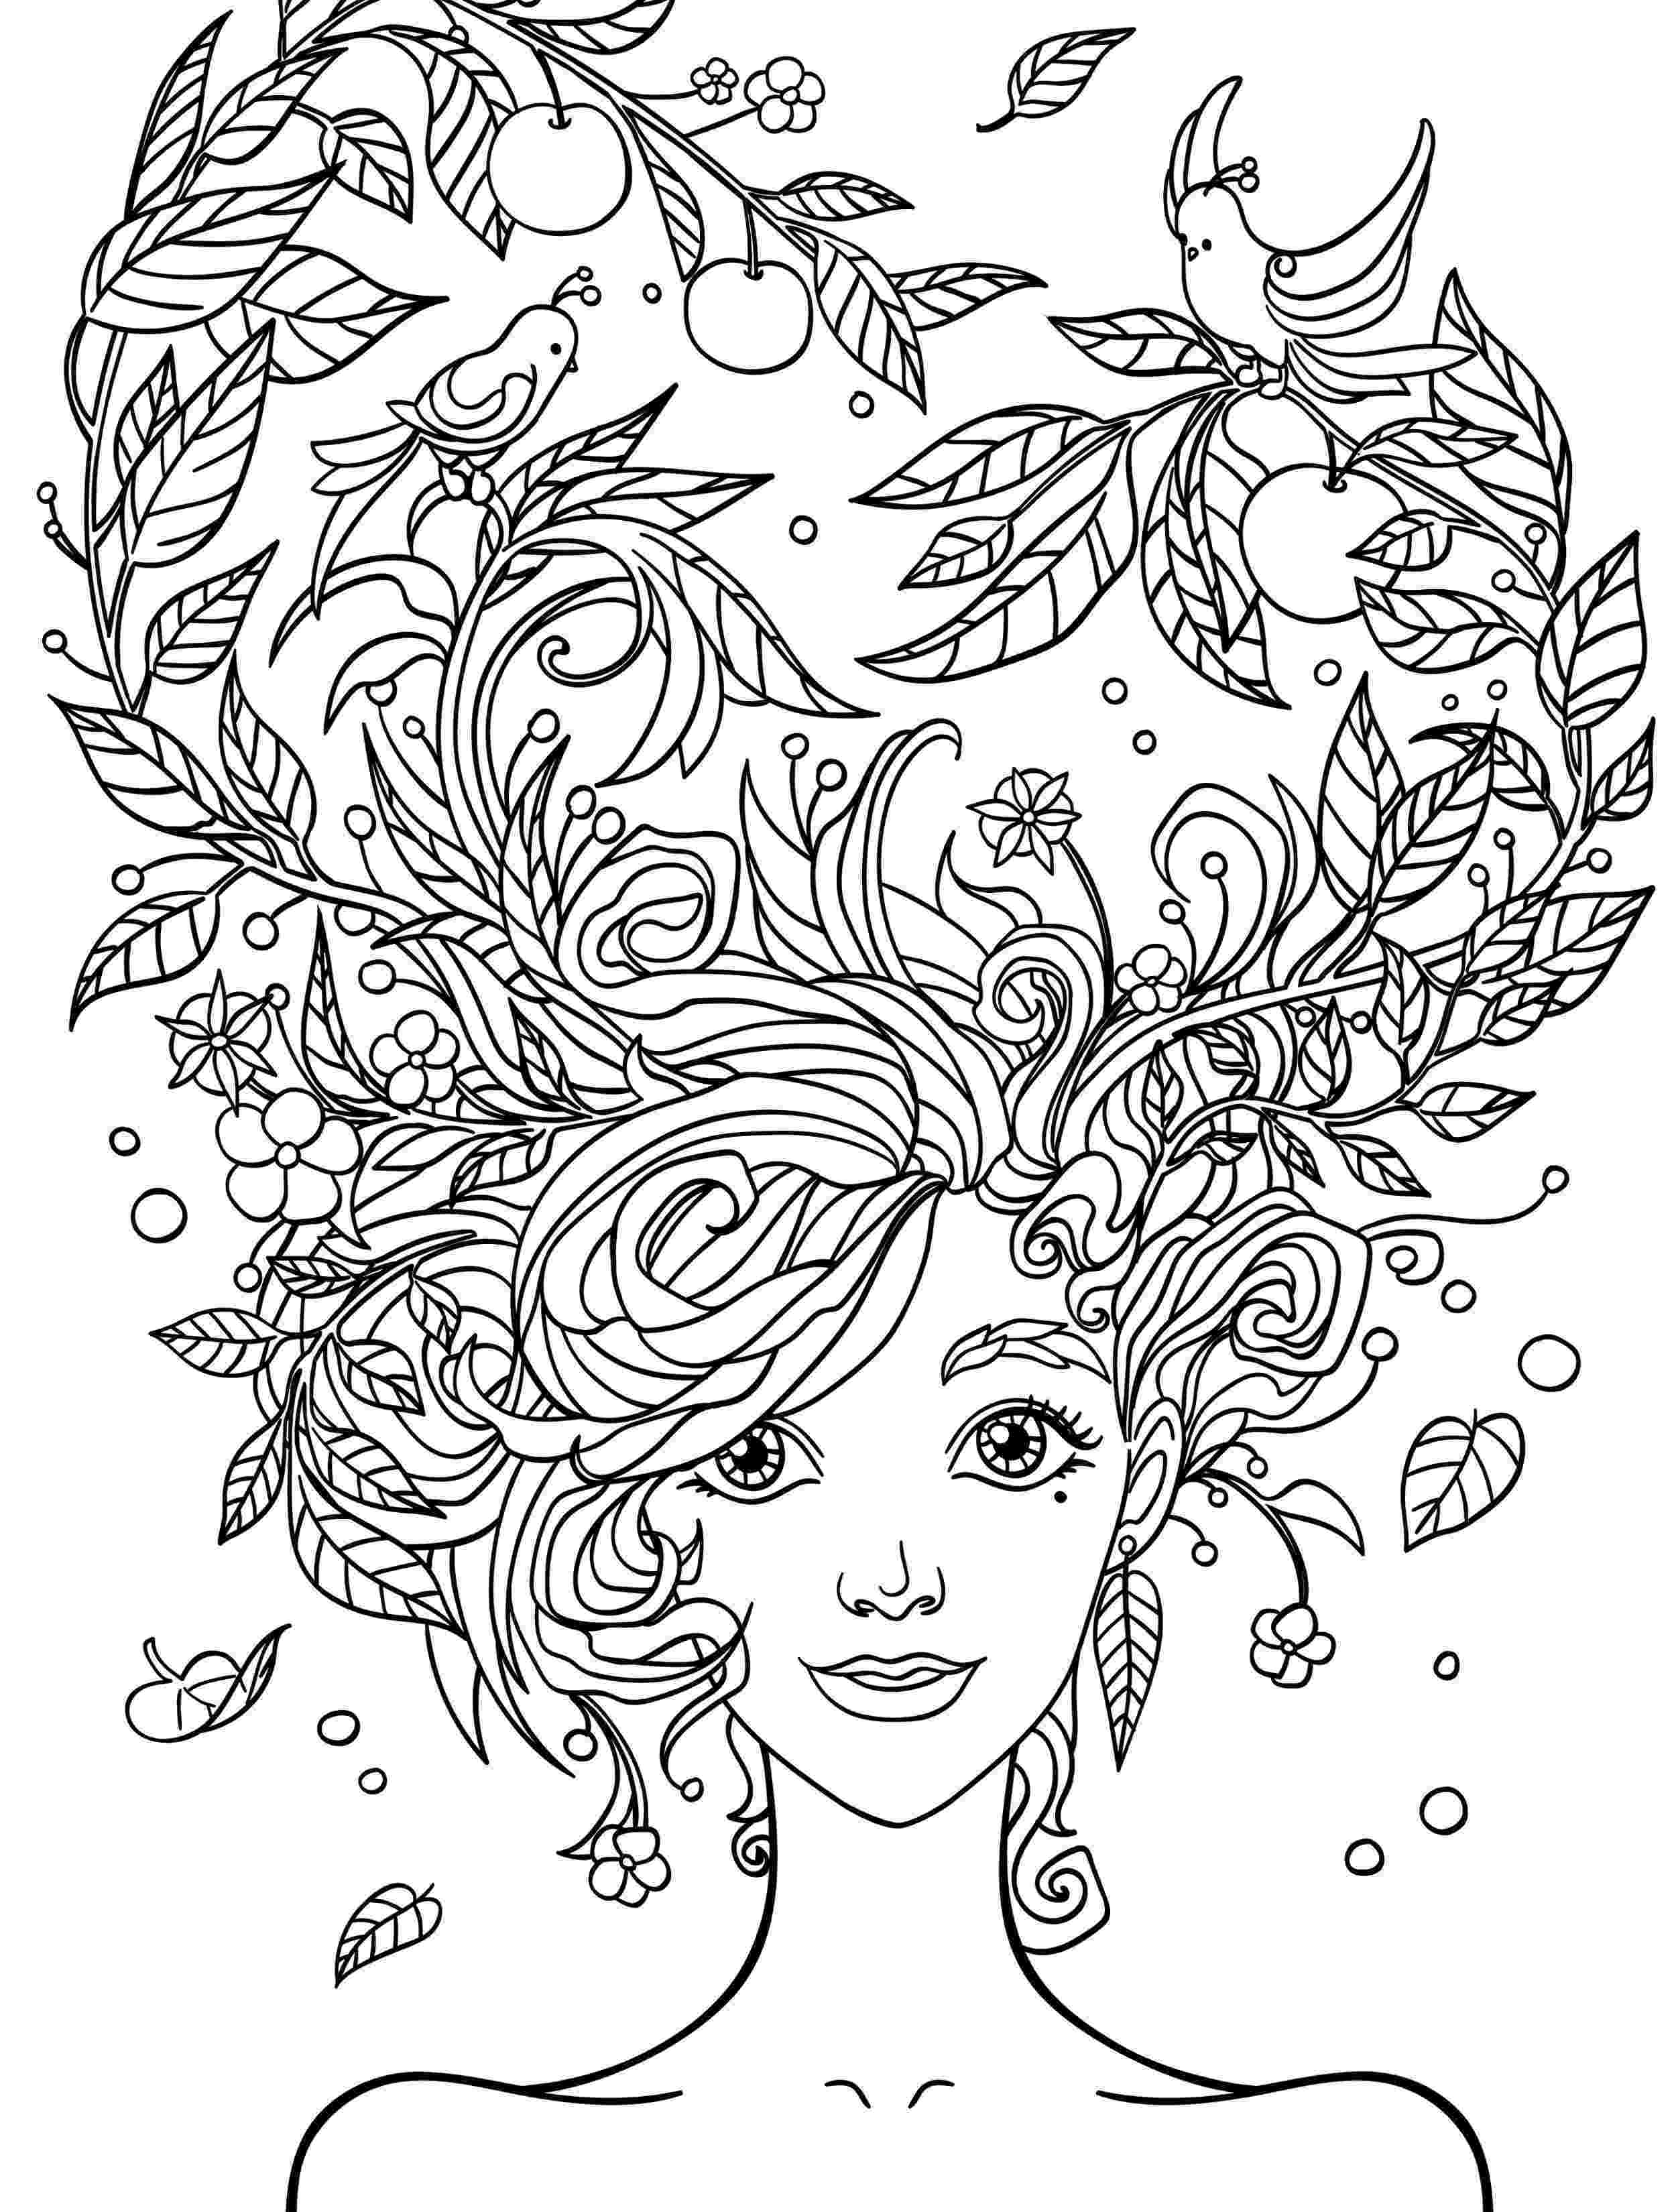 coloring pages for adults free online free coloring pages for adults 25 cool printable design adults for coloring pages free online